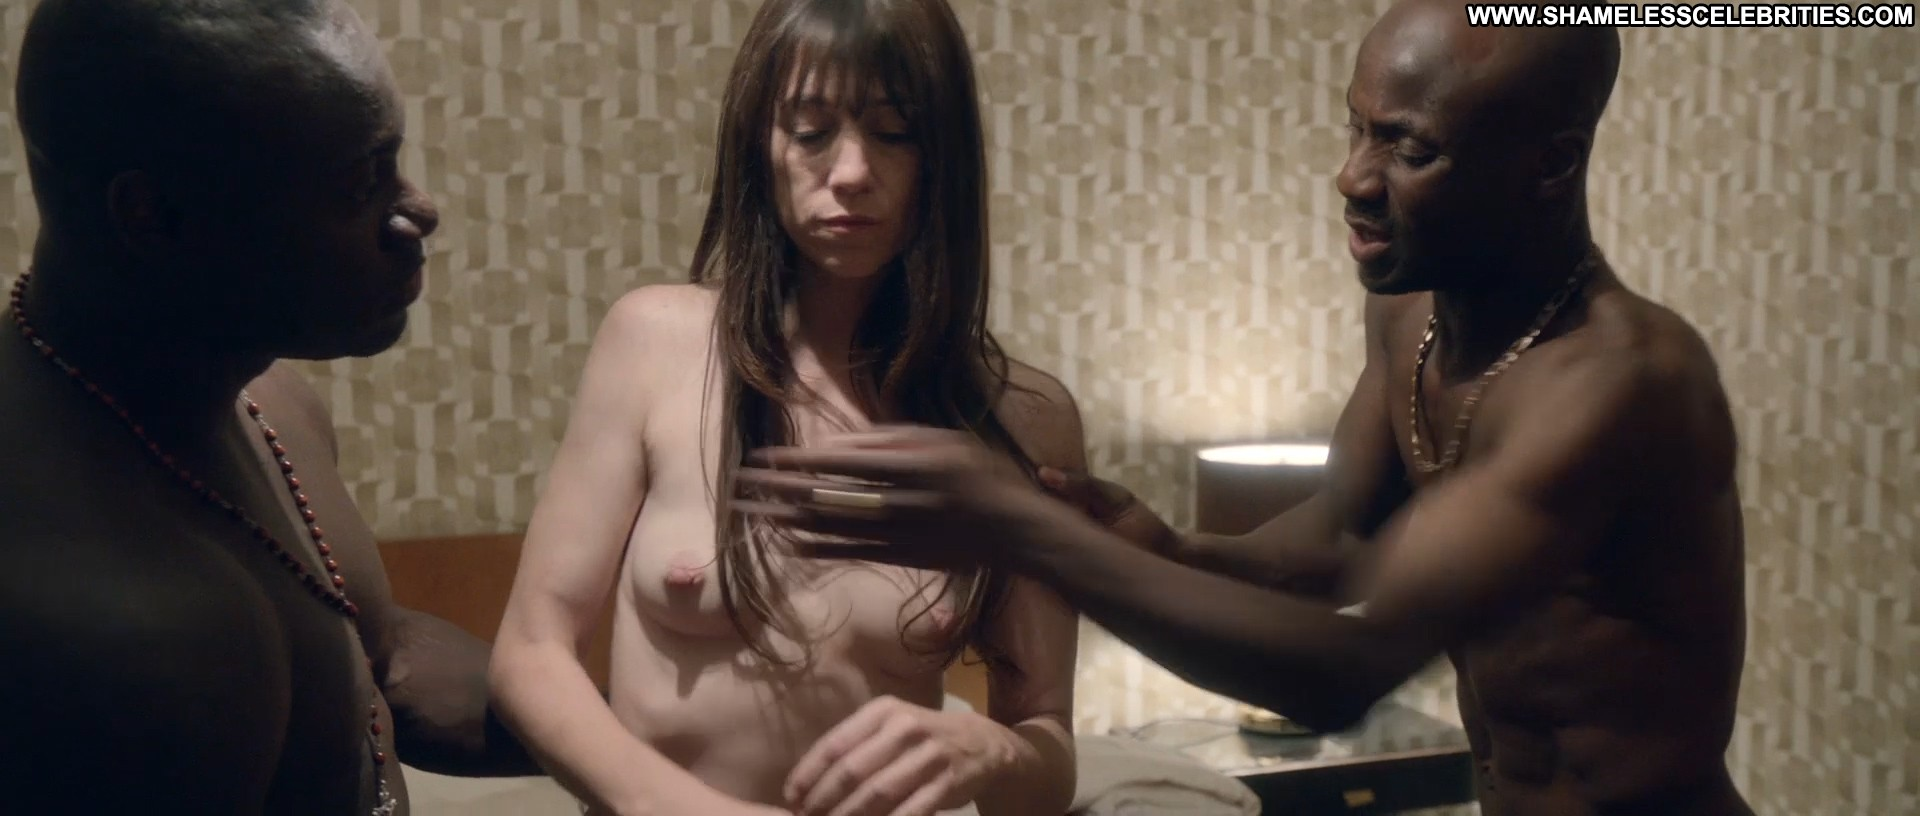 Charlotte gainsbourg cement clip 2